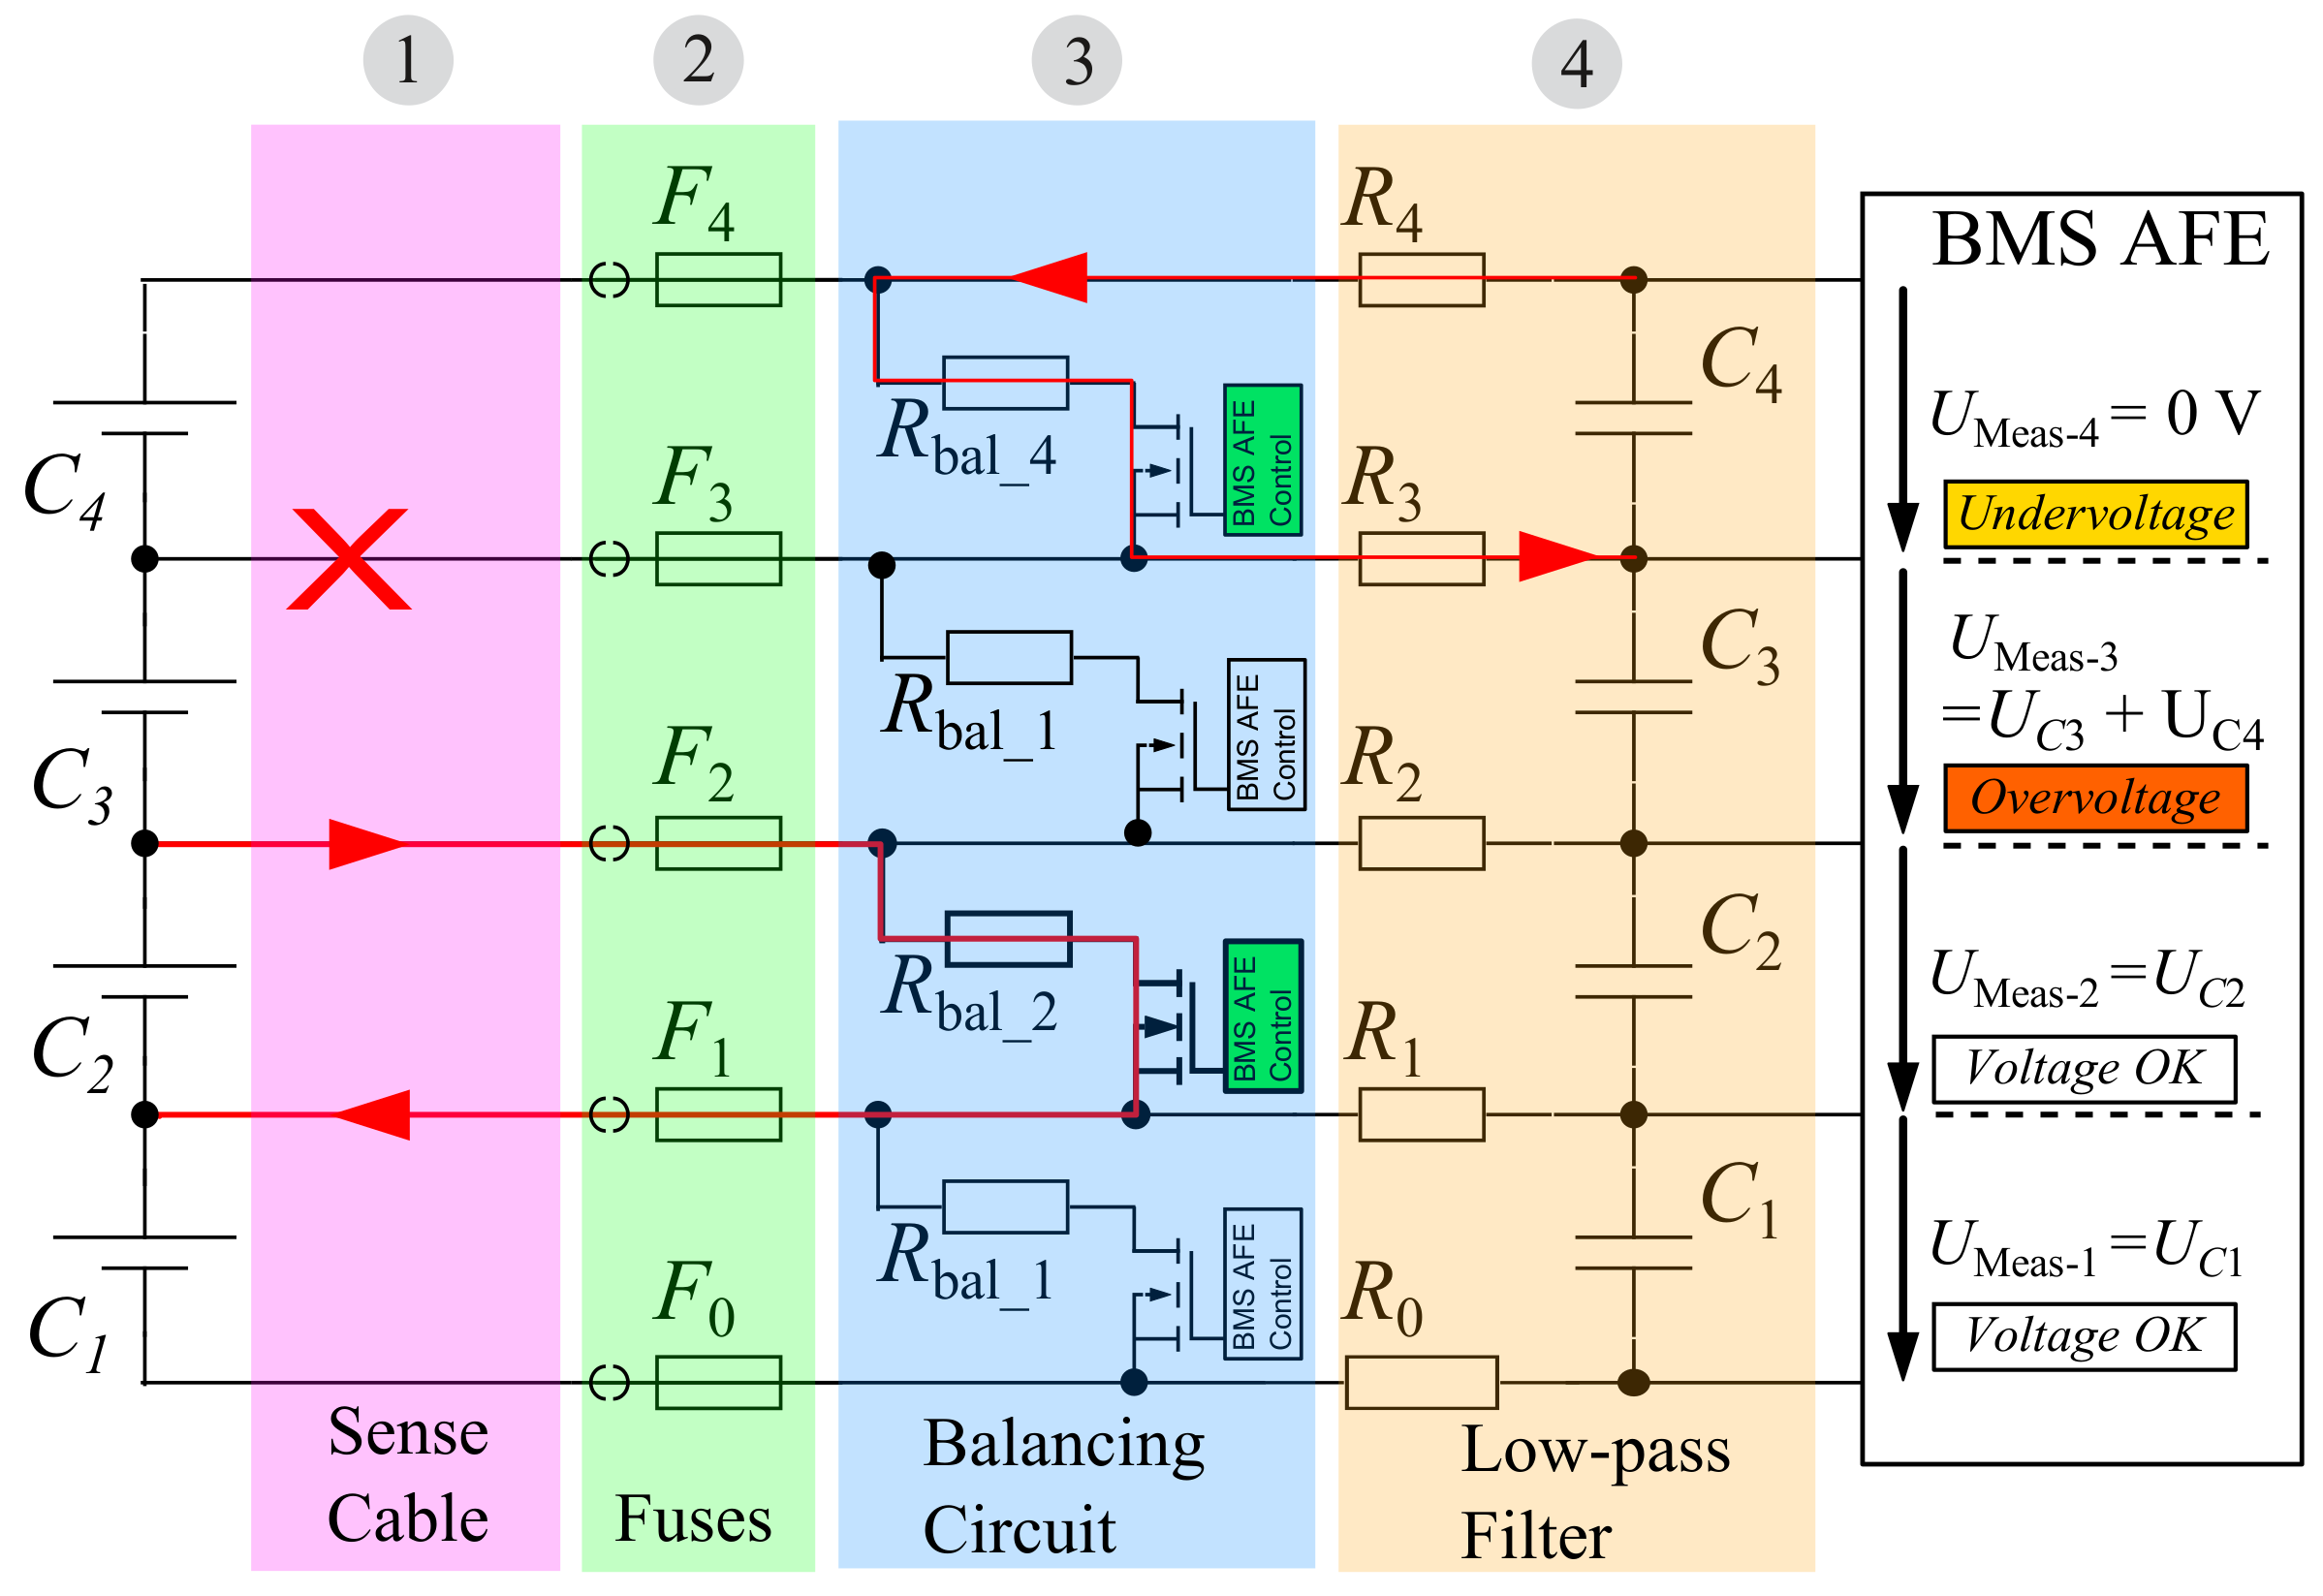 Applied Sciences Free Full Text Battery Management System Circuit As Well Monitor Diagram Furthermore Electric Applsci 08 00534 G007 Figure 7 Equivalent Model Of Cell Voltage